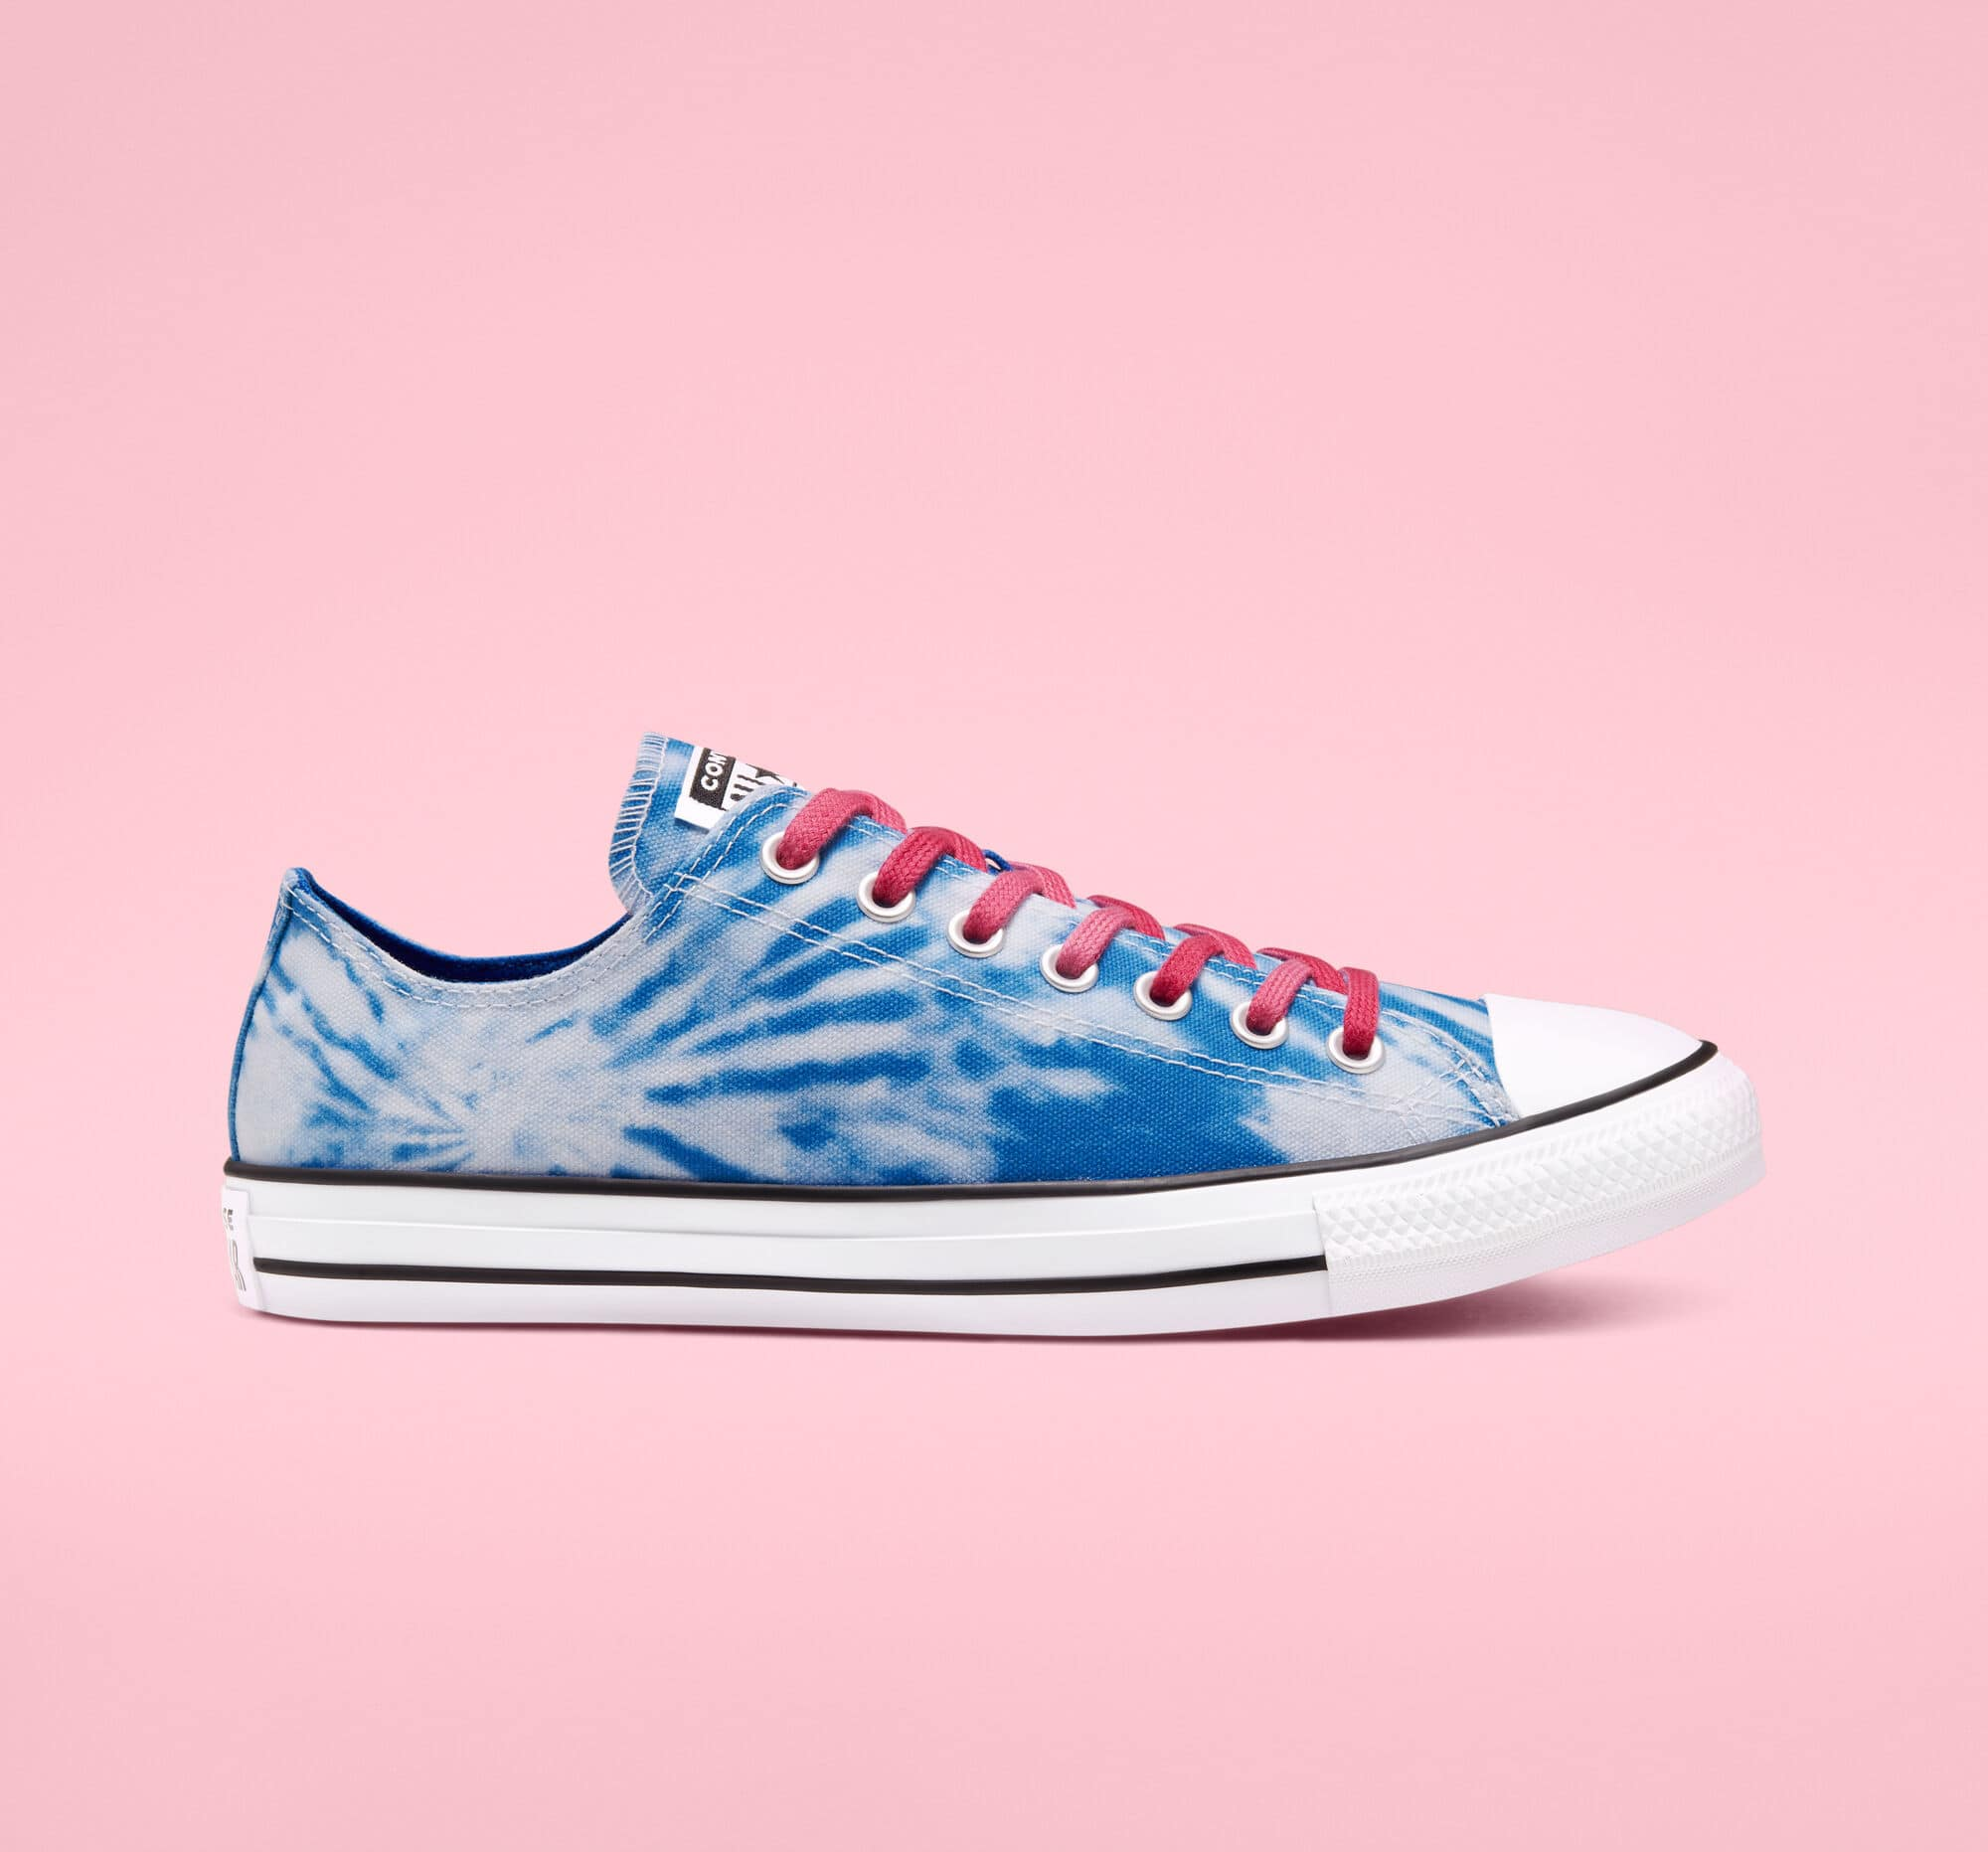 Converse 40% off Select Sale: Men's or Women's Twisted Vacation or Queen of Hearts Low Top $21.58, Kids' Dinoverse High Top $18, More + free shipping